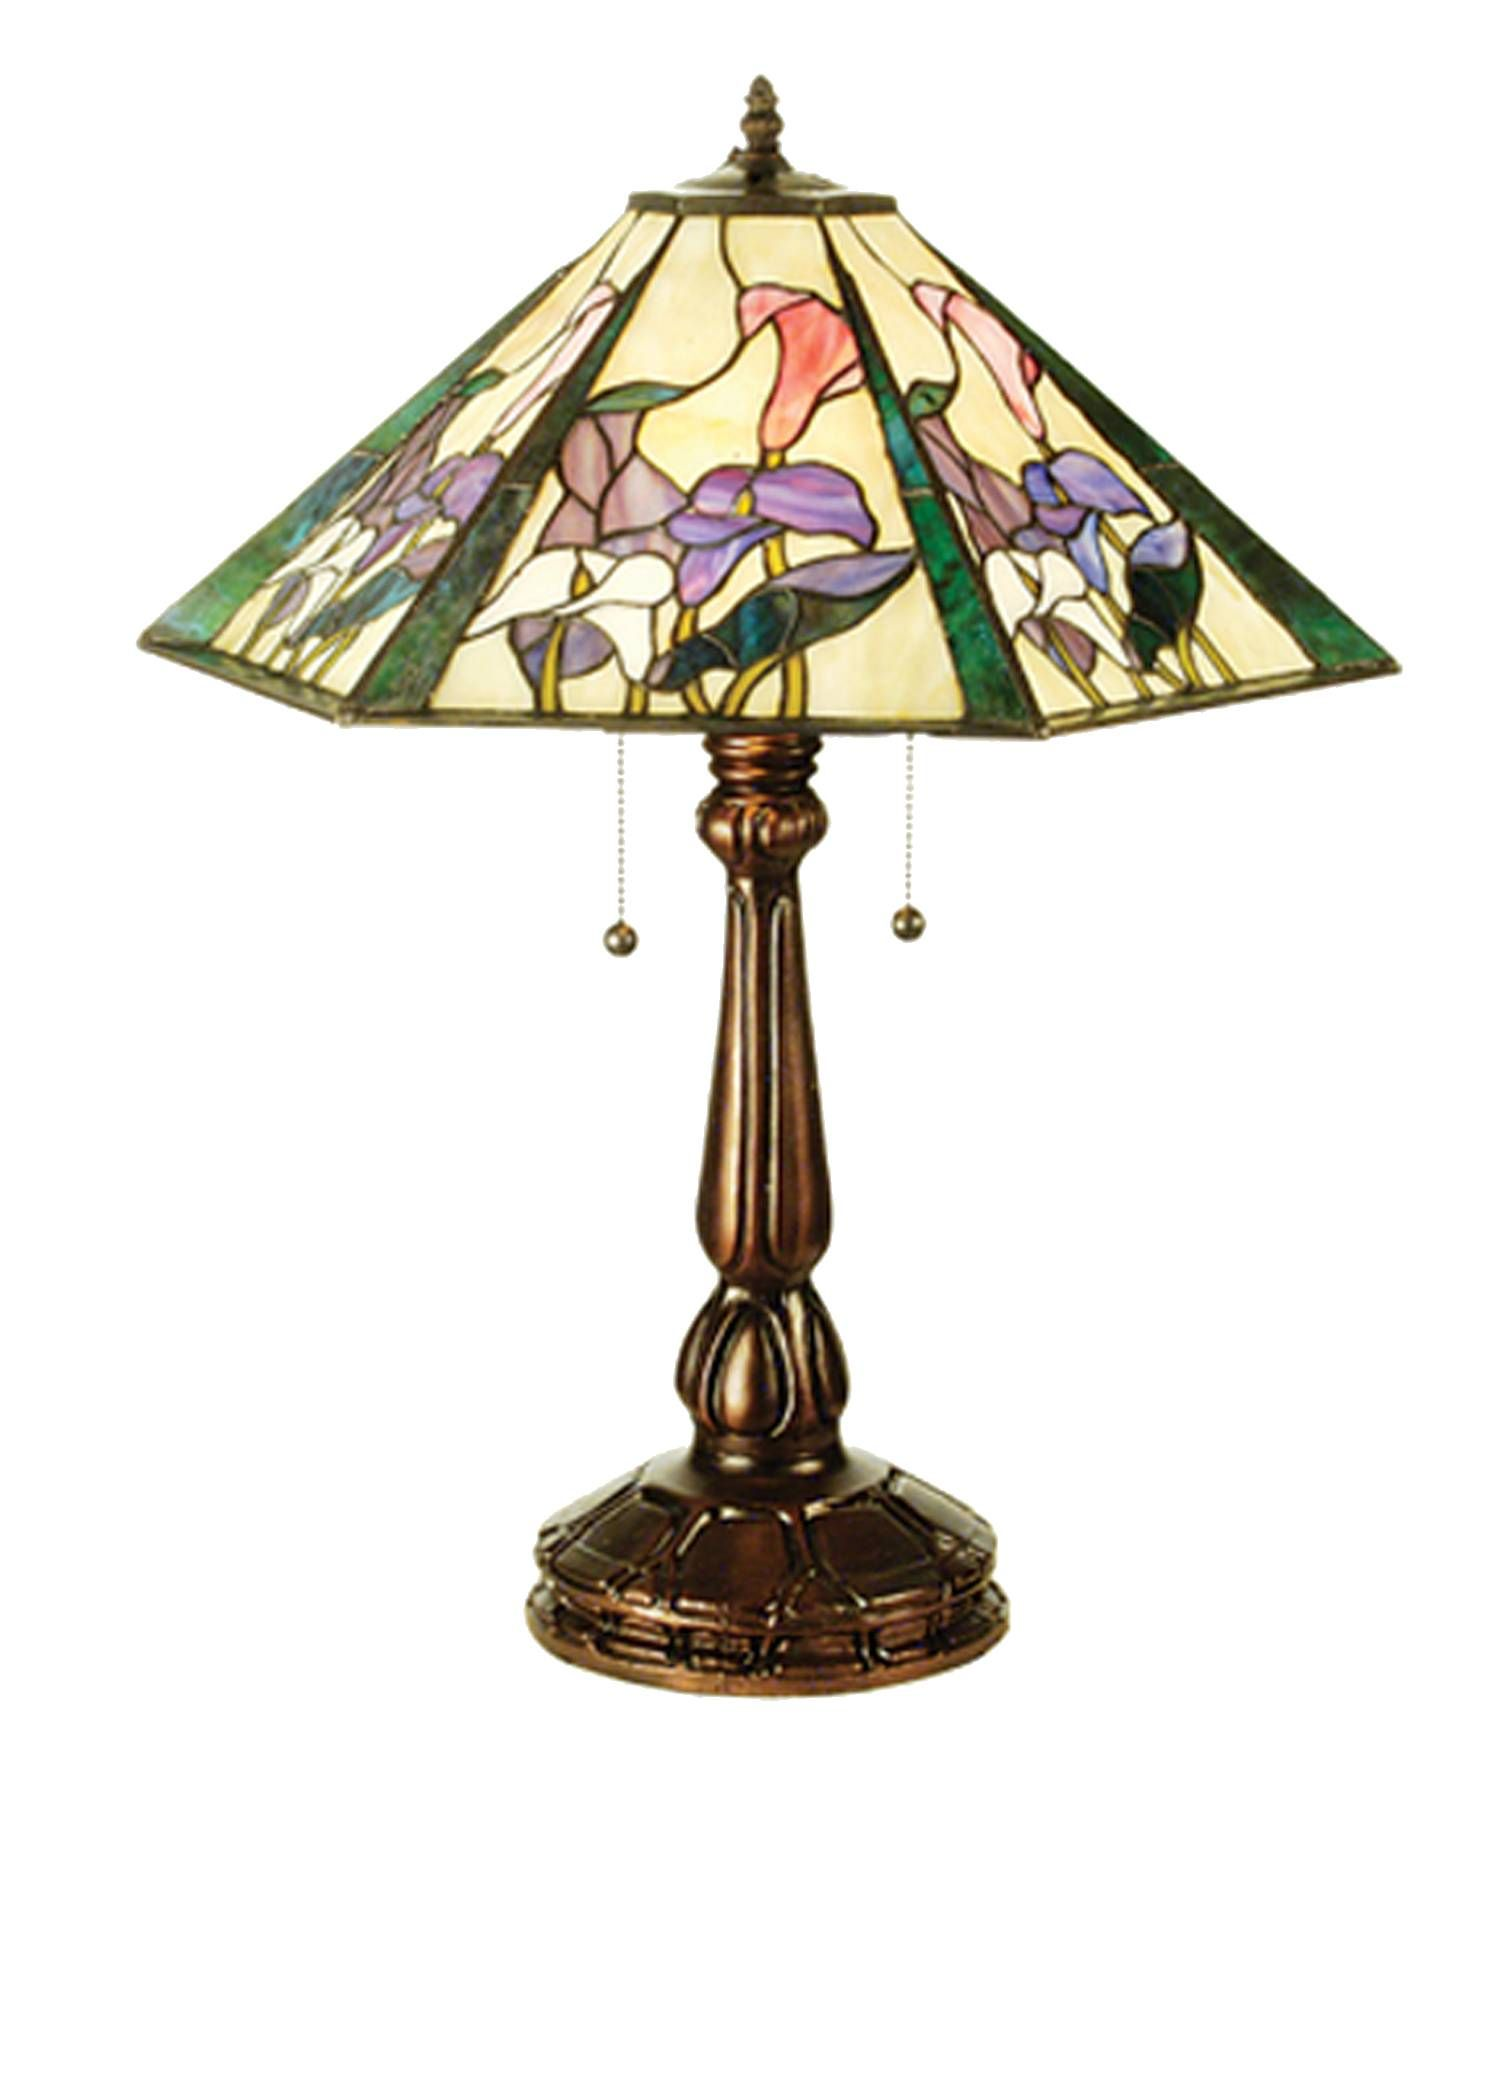 tiffany lamps for sale meyda tiffany calla lily hetable lamp - Meyda Tiffany